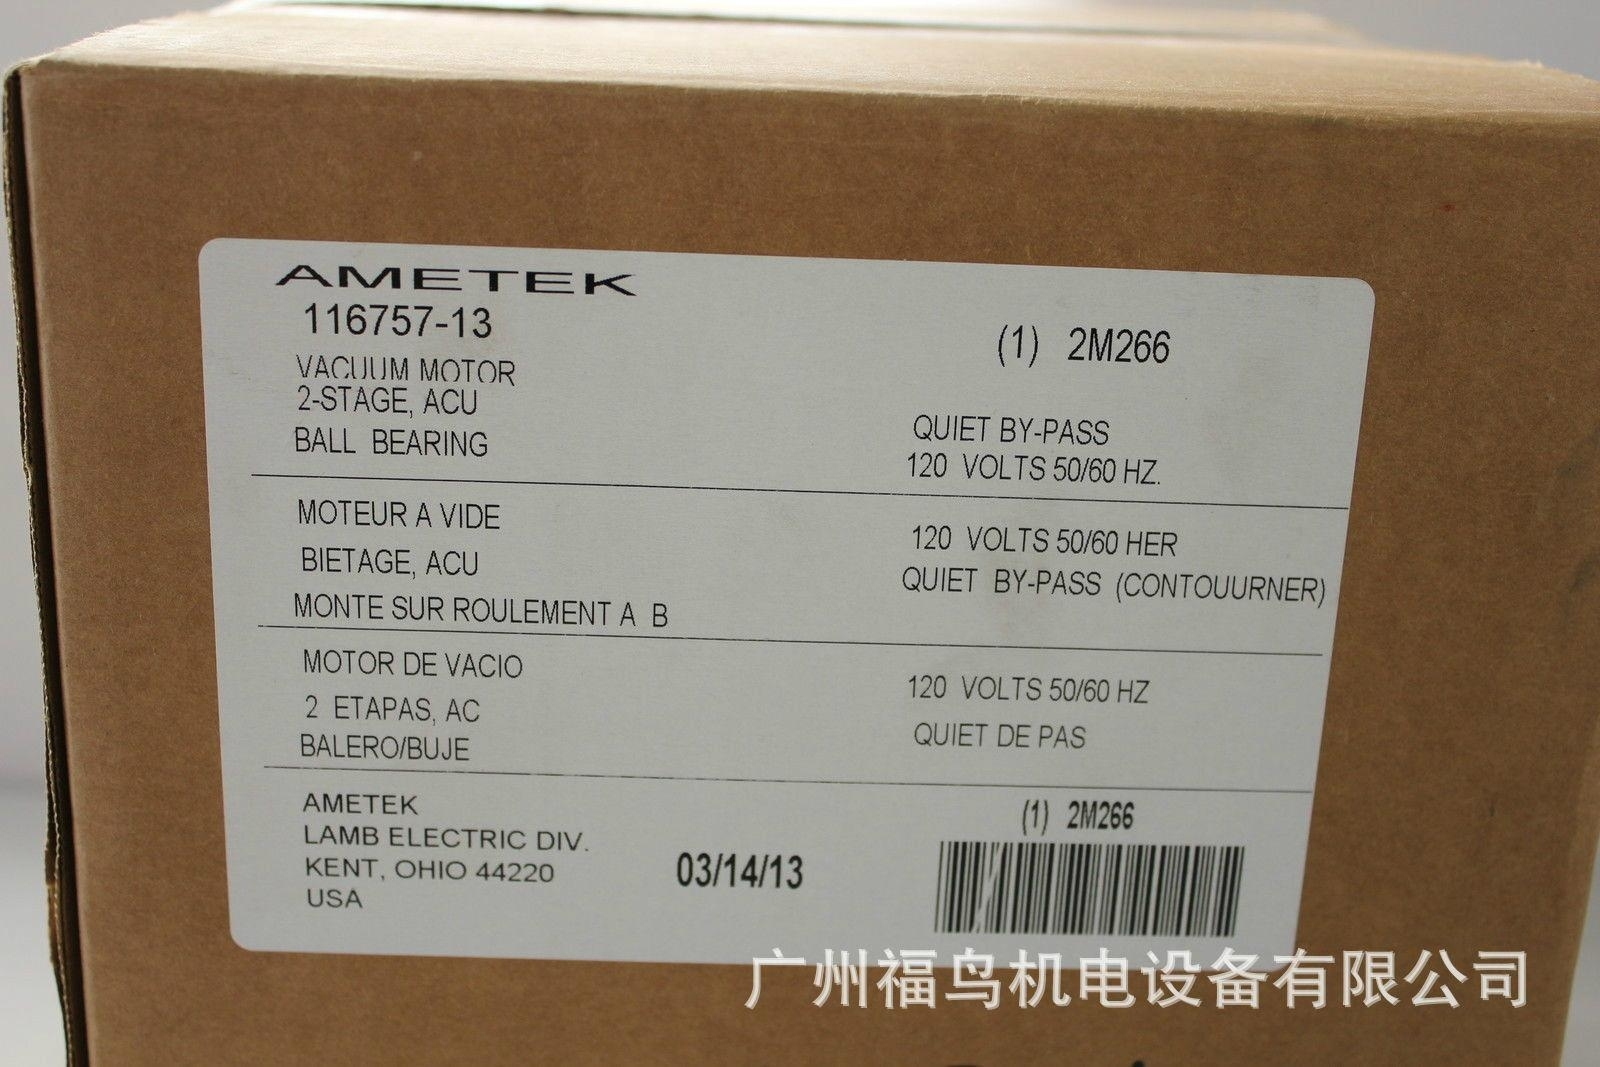 AMETEK LAMB ELECTRIC真空馬達, 型號: 116757-13